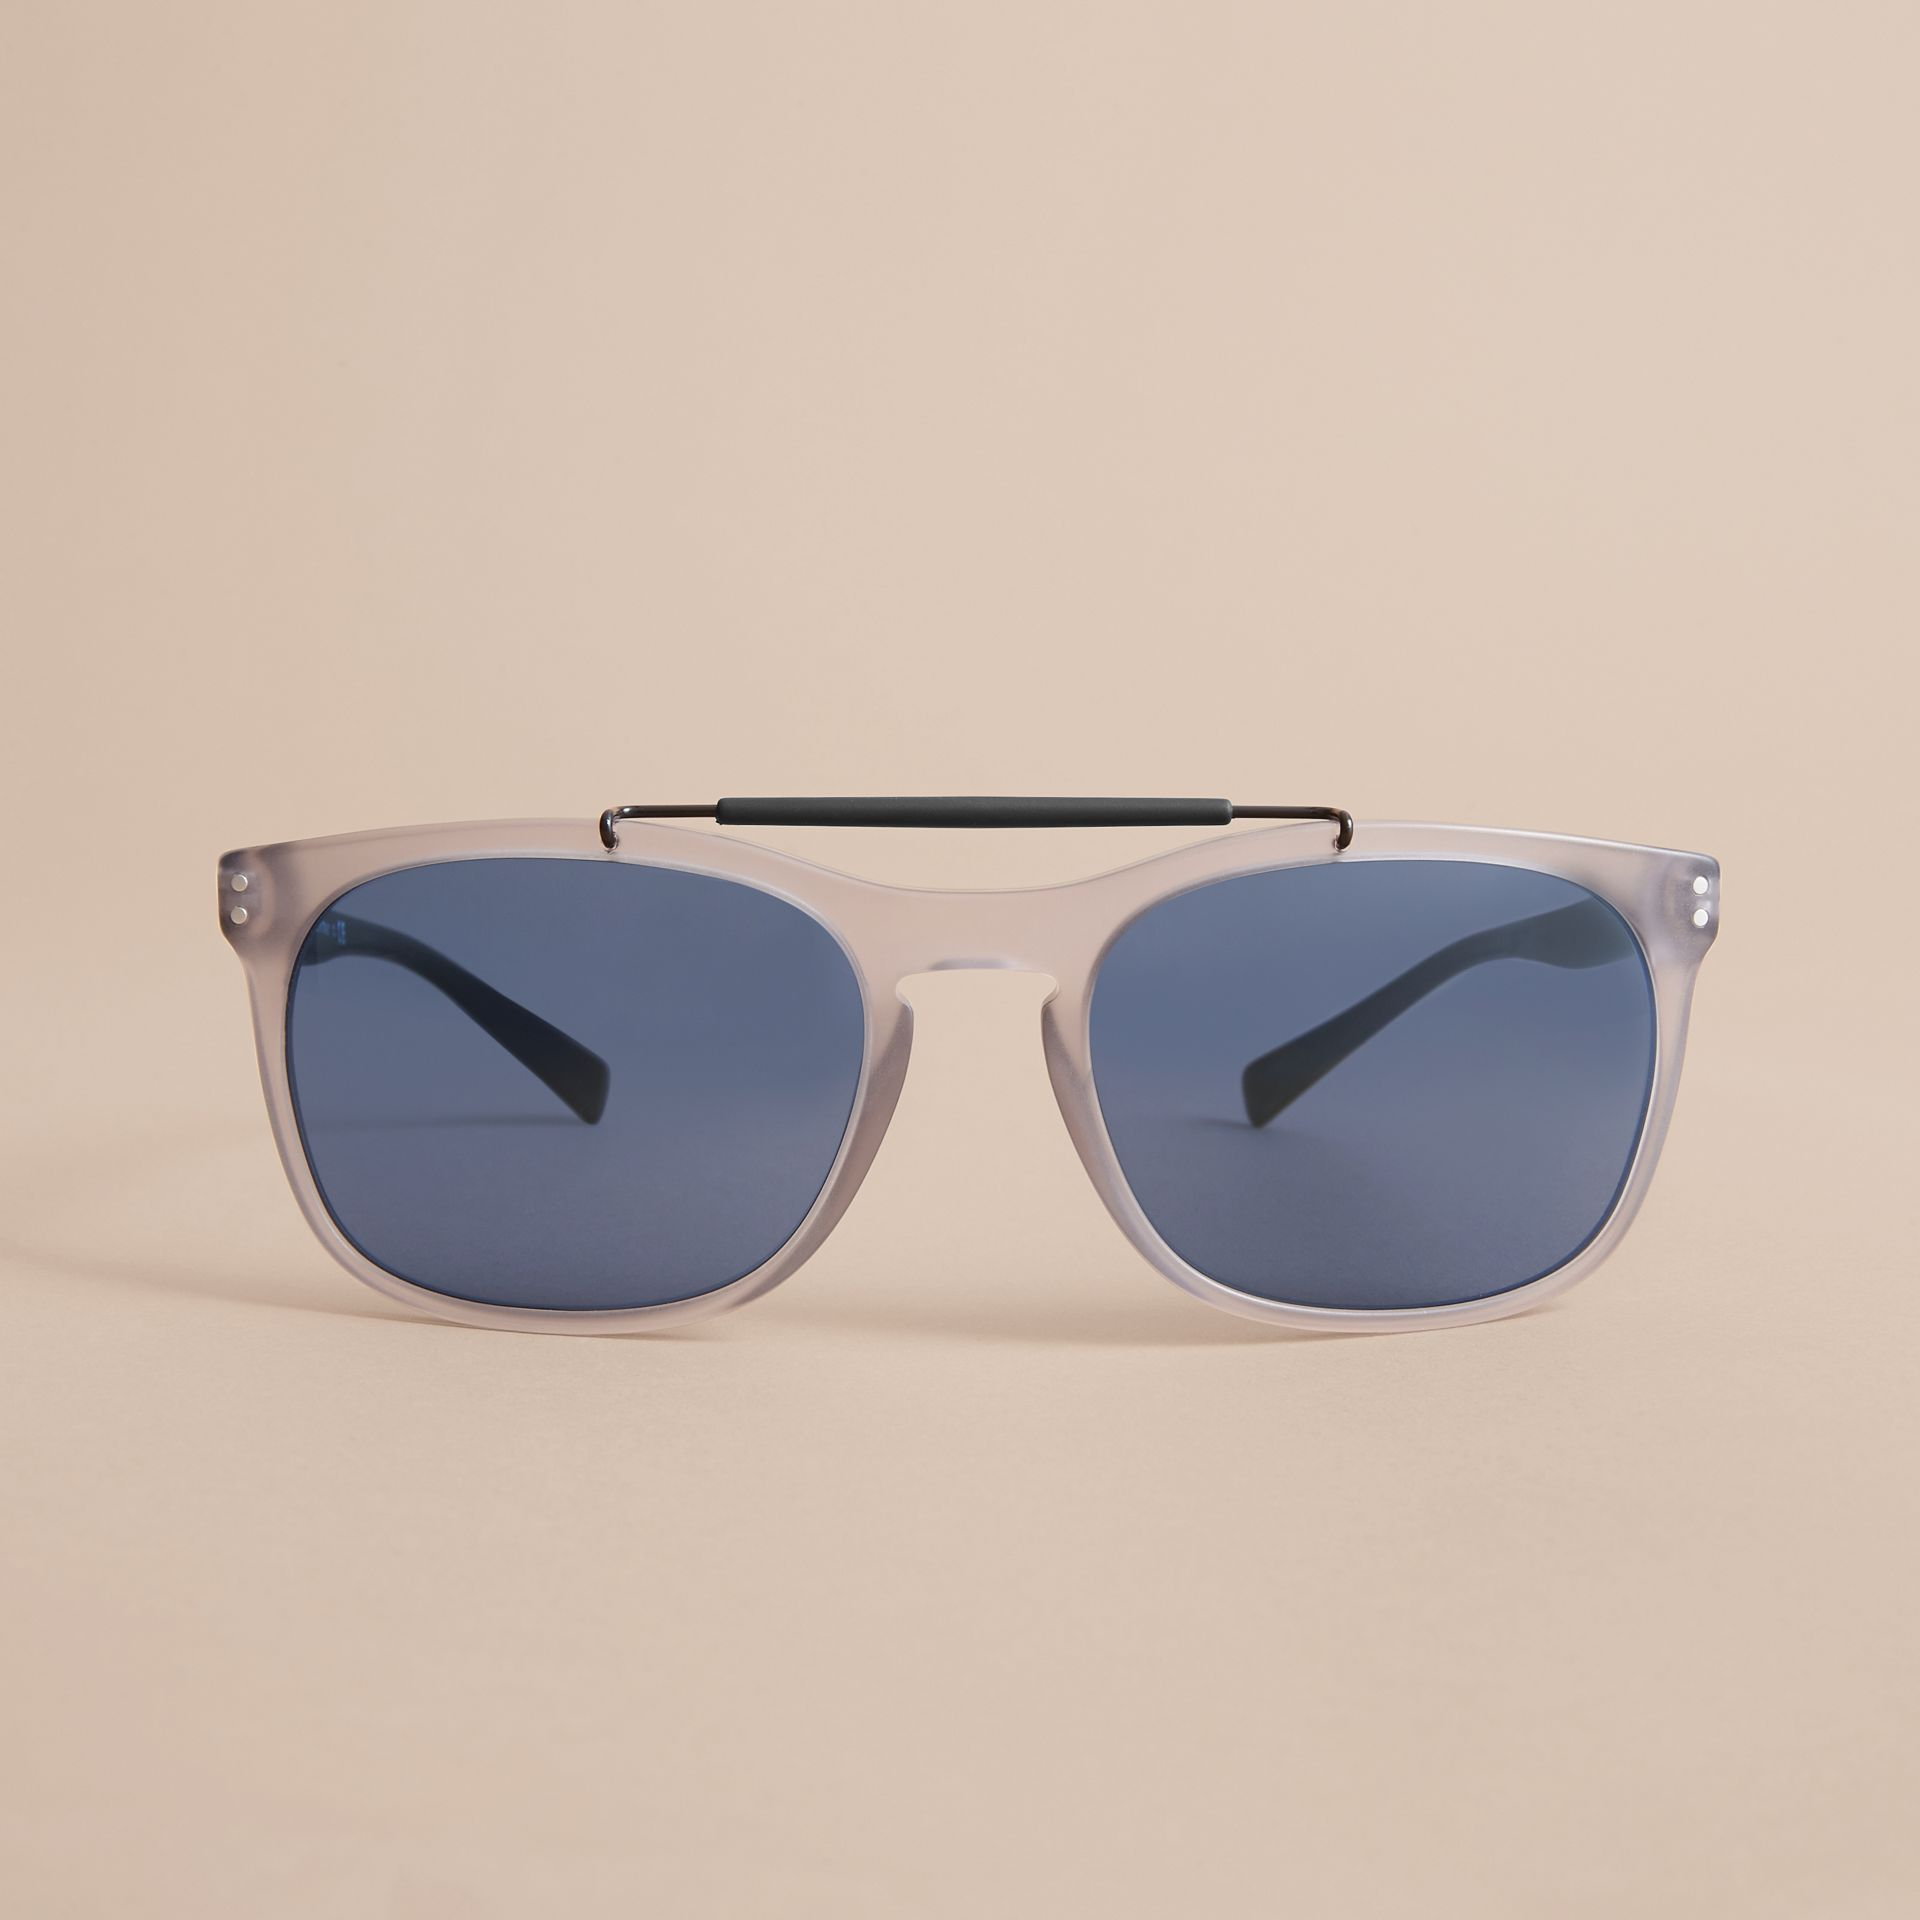 Top Bar Square Frame Sunglasses in Mineral Grey - Men | Burberry - gallery image 3